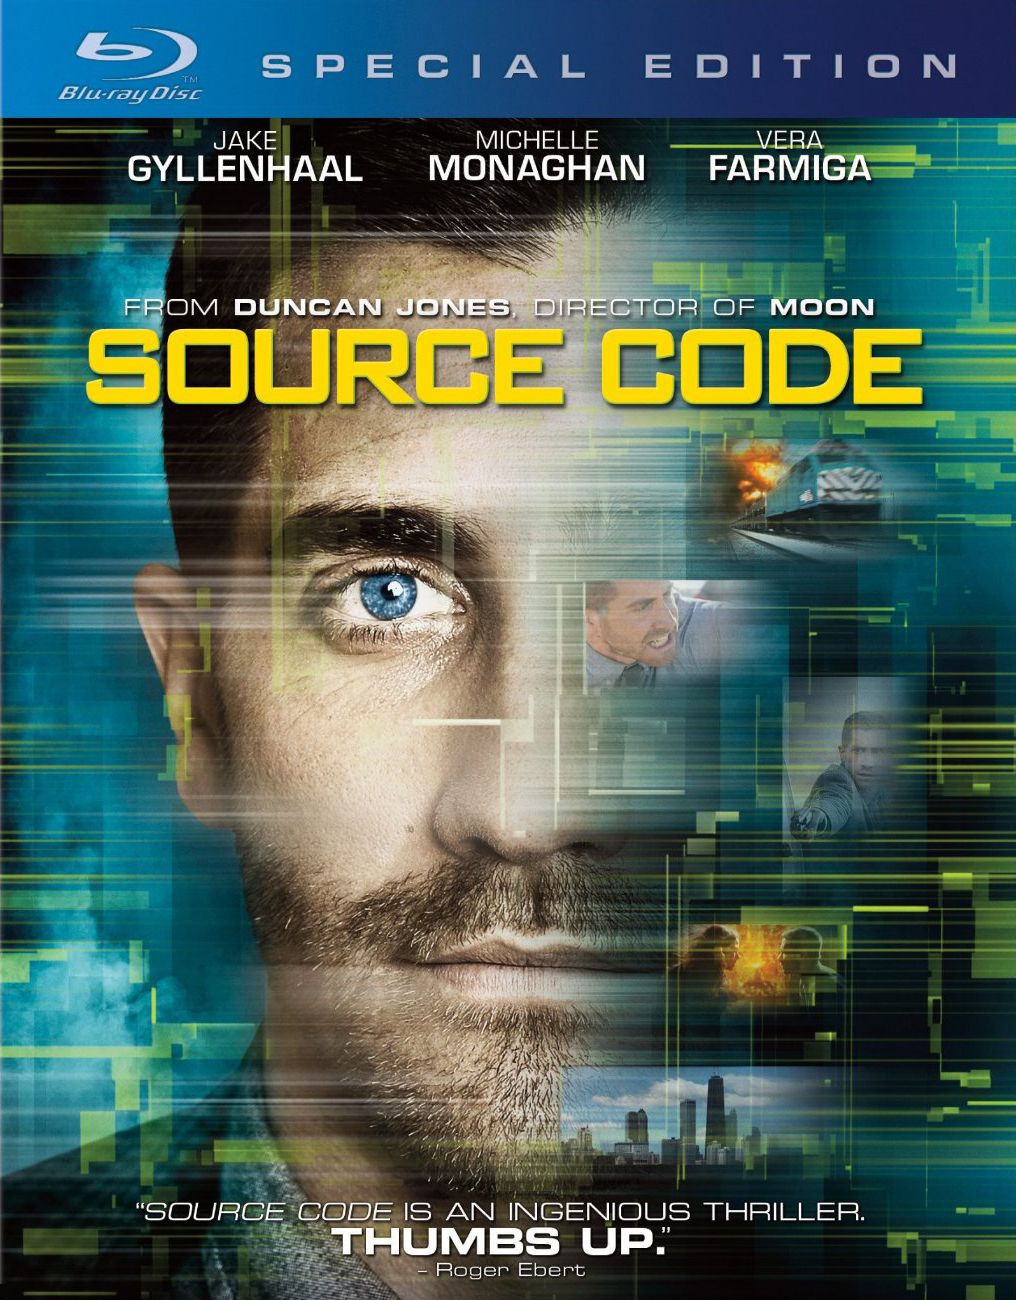 Publicity still for Source Code